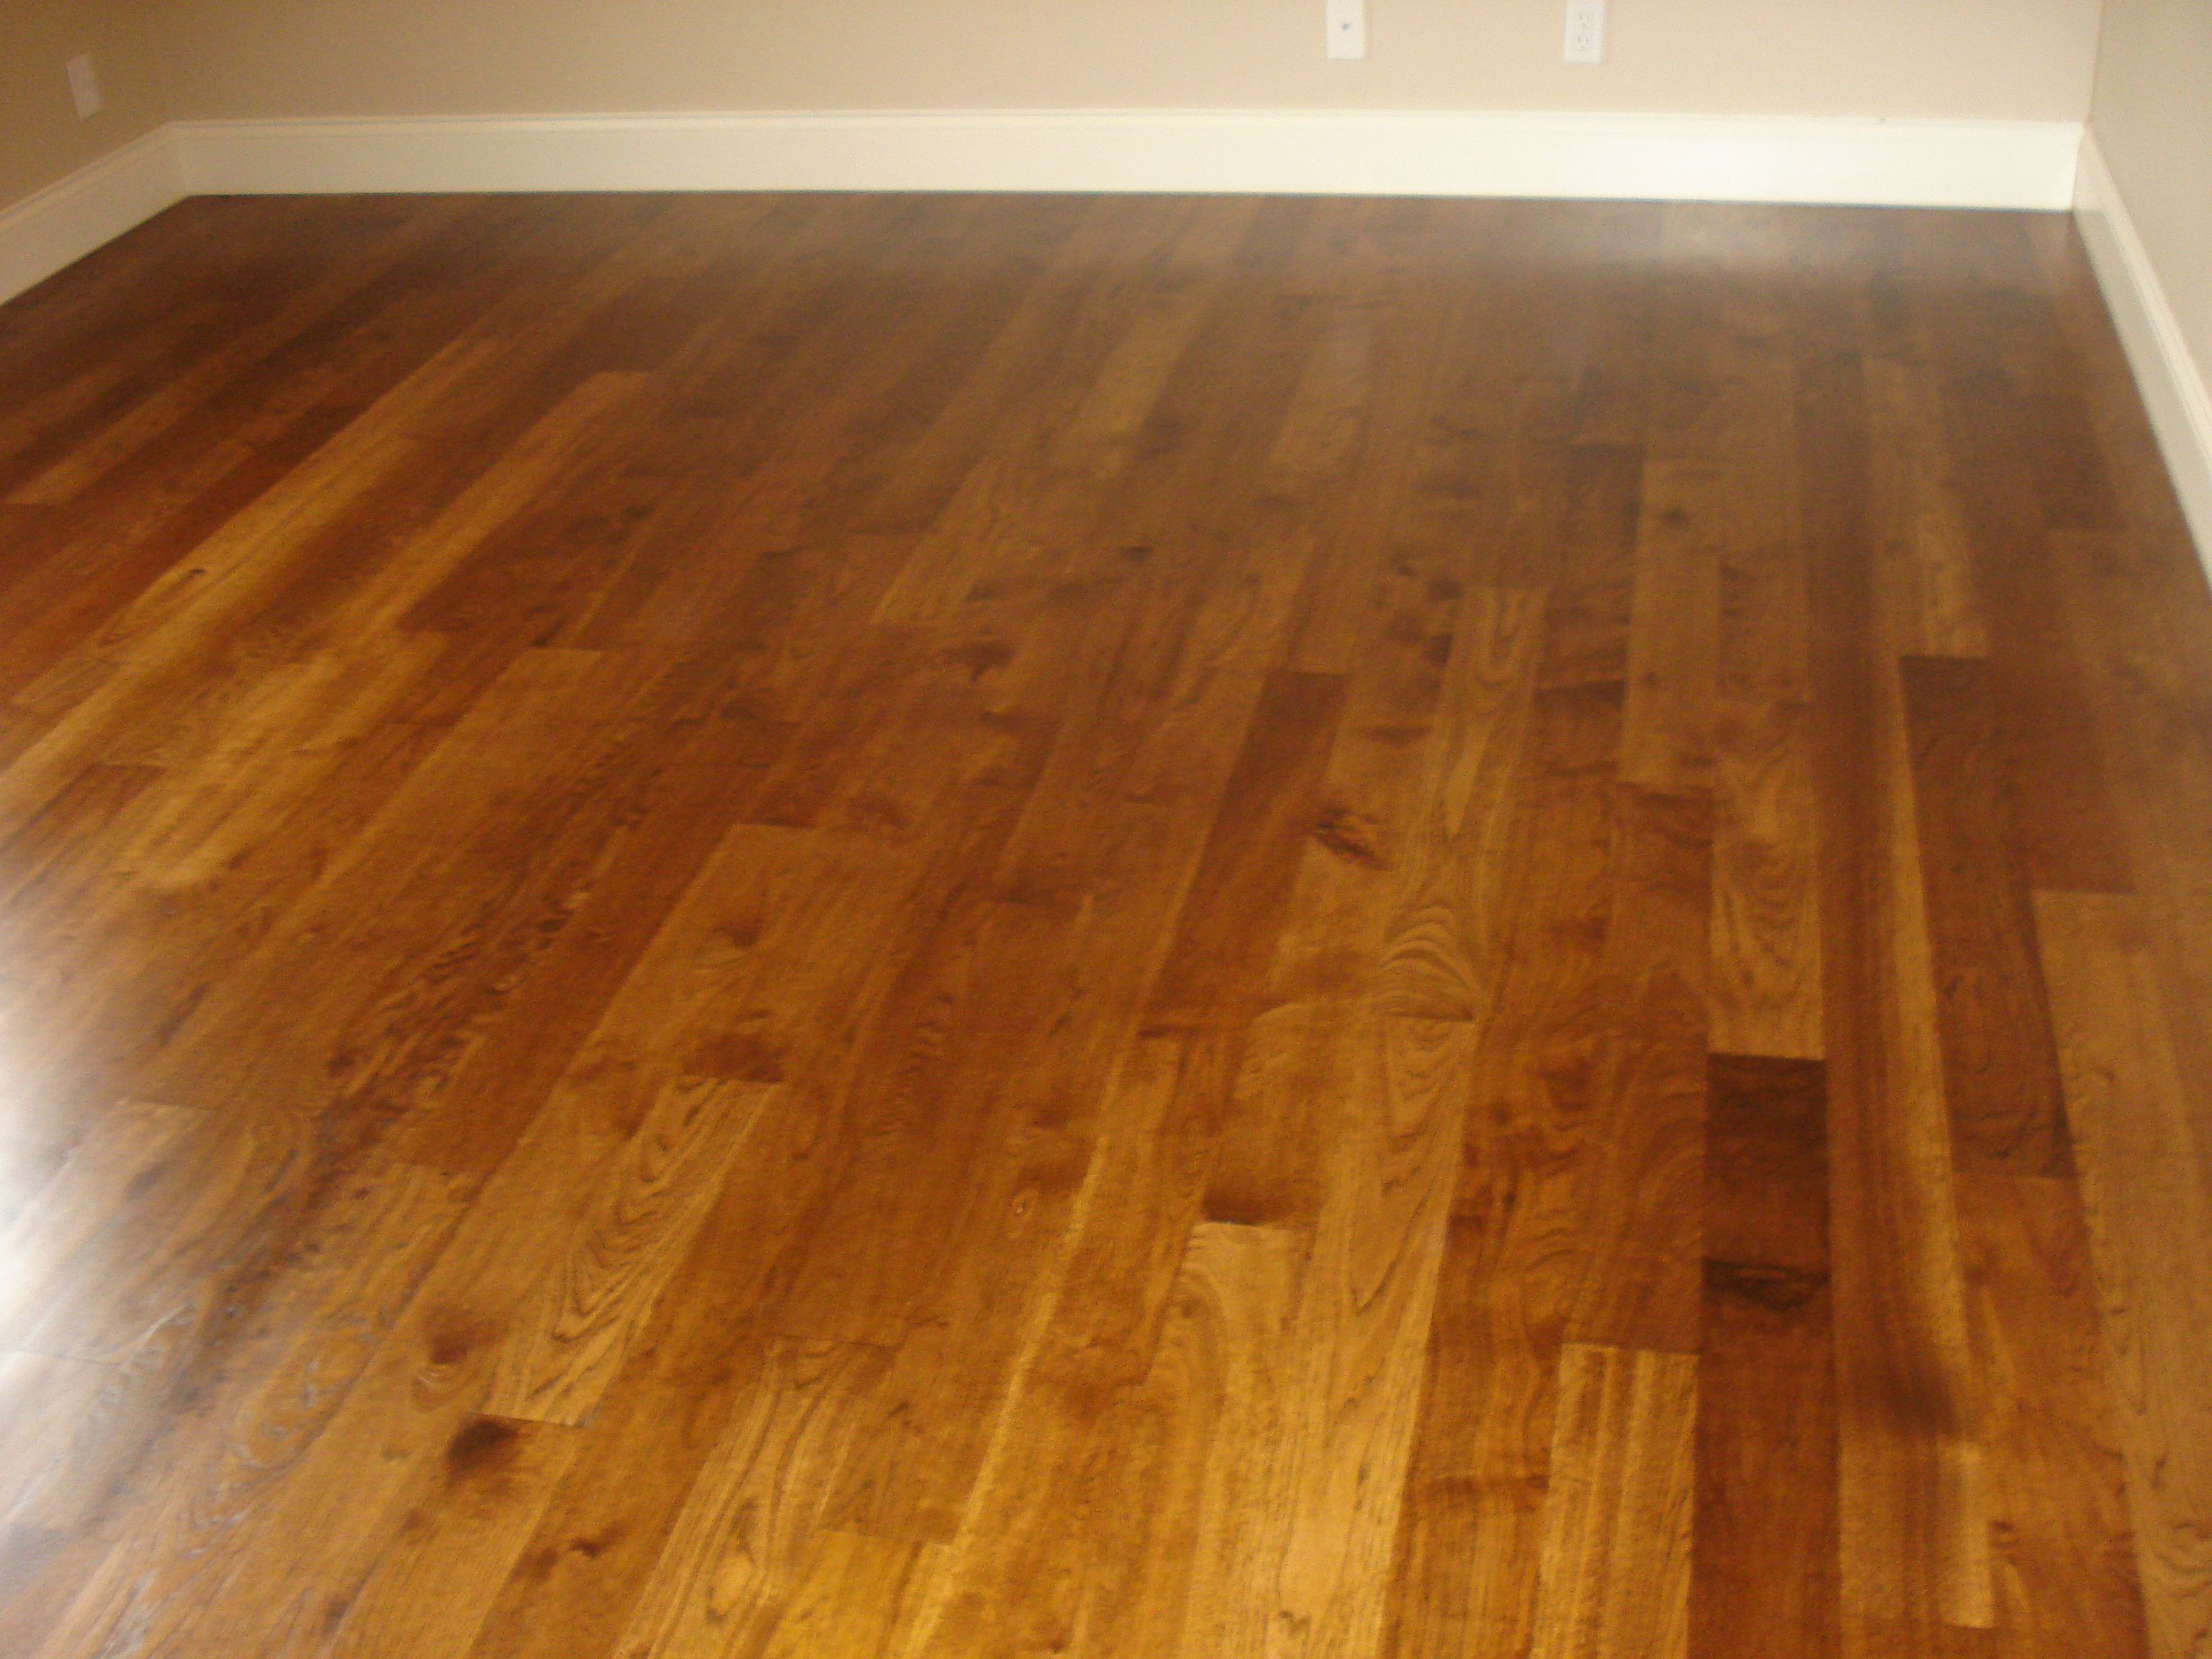 Living Room Pictures Of Rooms With Hardwood Floors carsons custom hardwood floors utah flooring rooms empty room floor 3